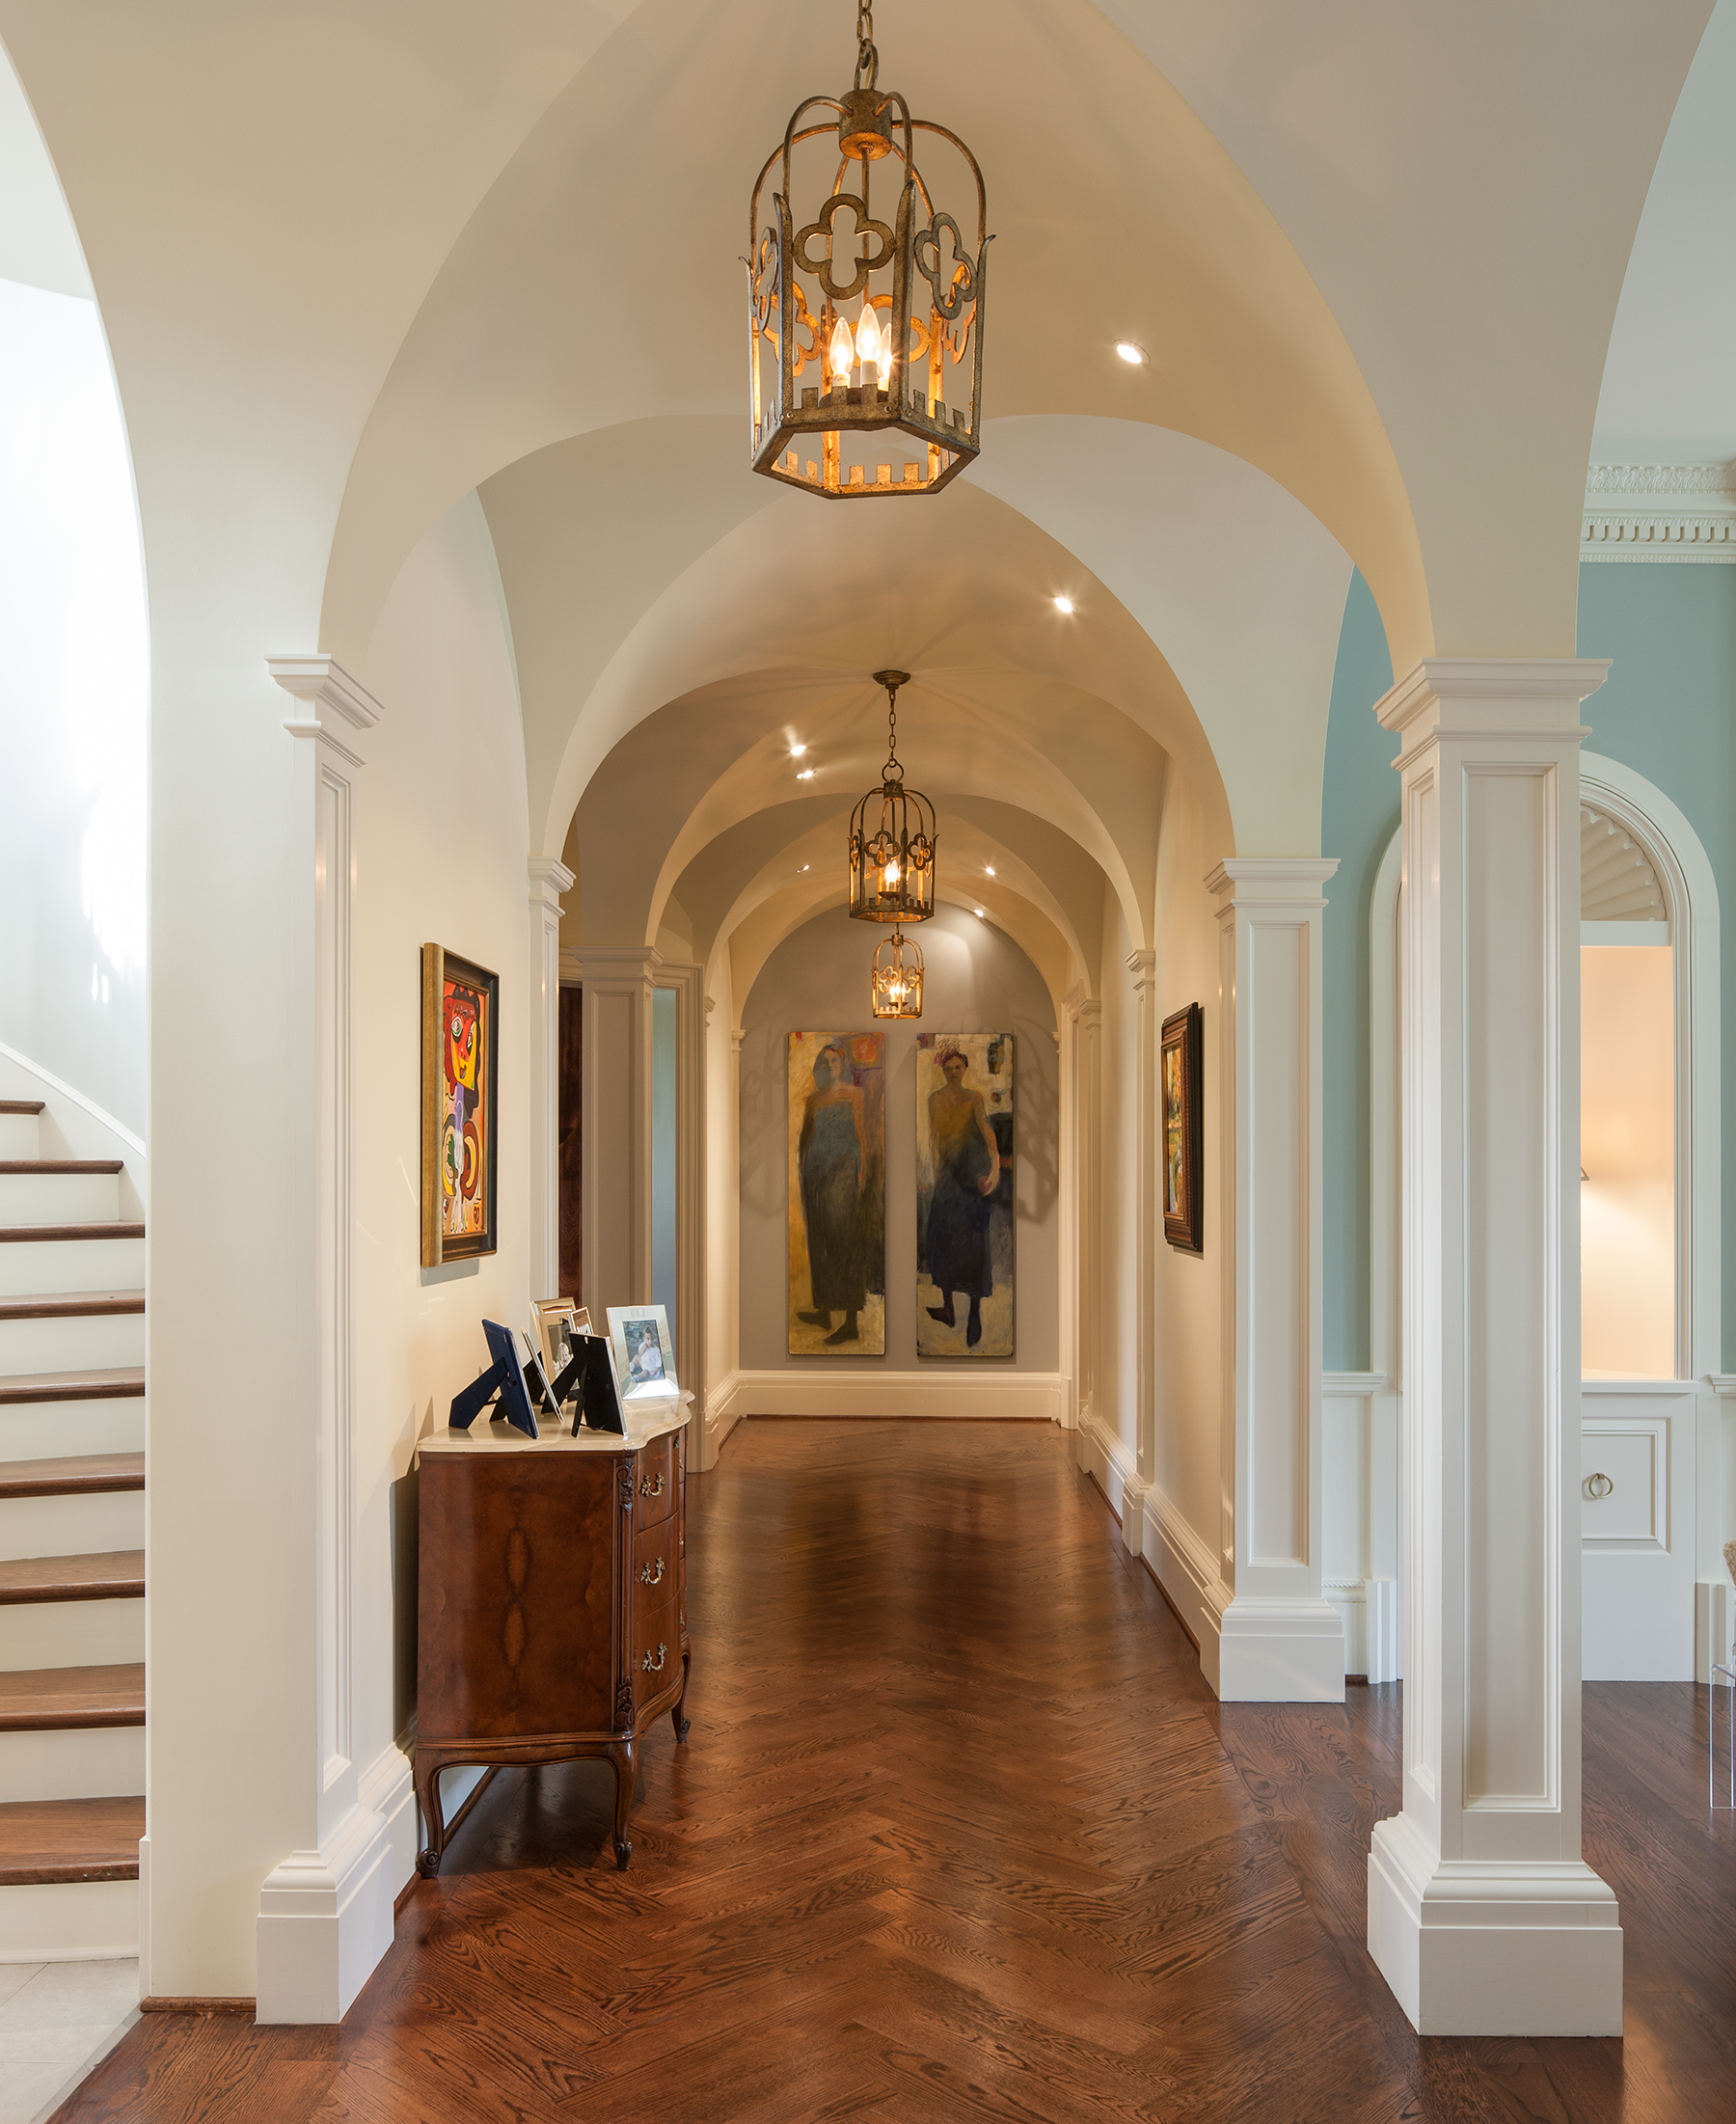 Hallway Entrance - Johnson House Art Collection, William T. Baker